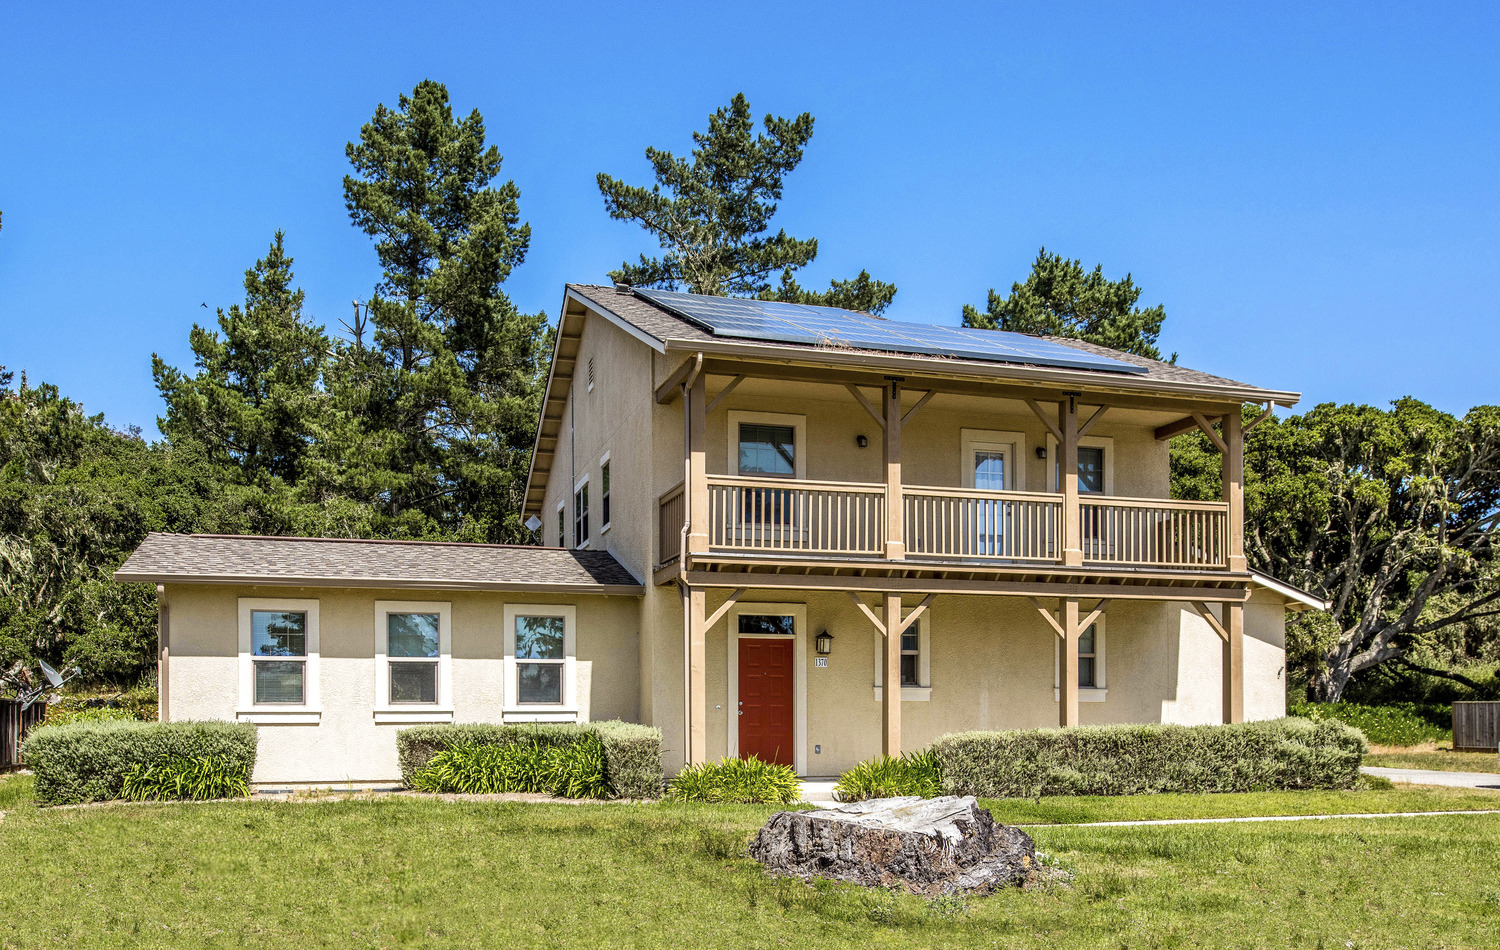 CBG builds Monterey Bay Military Housing, a 2,580 Homes for Army, Navy, and Marine Corps Service Members and Students in Monterey, CA - Image #4